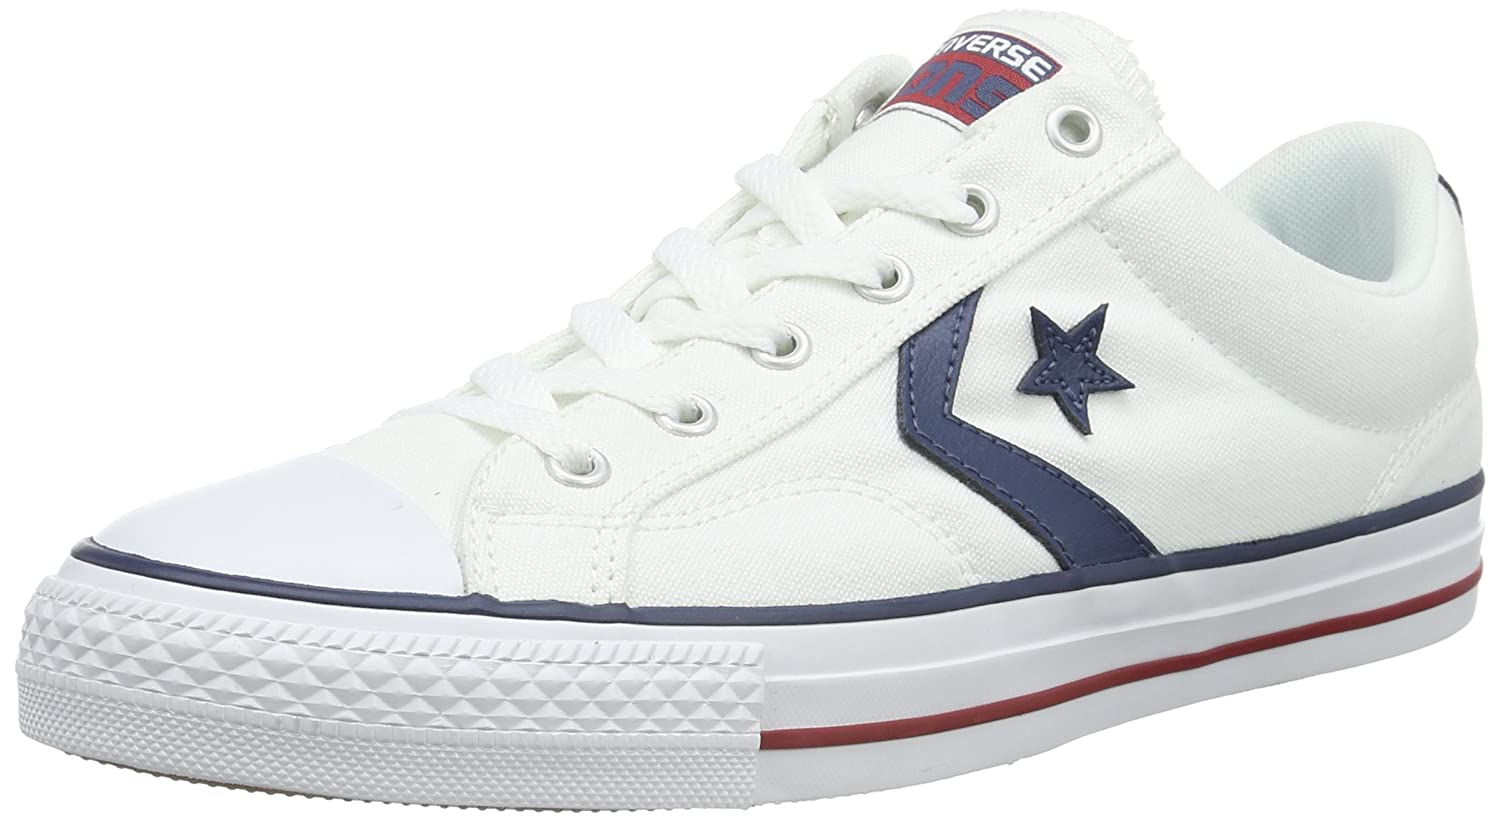 Converse Unisex-Erwachsene Star Player Ox Weiß Navy Low-Top